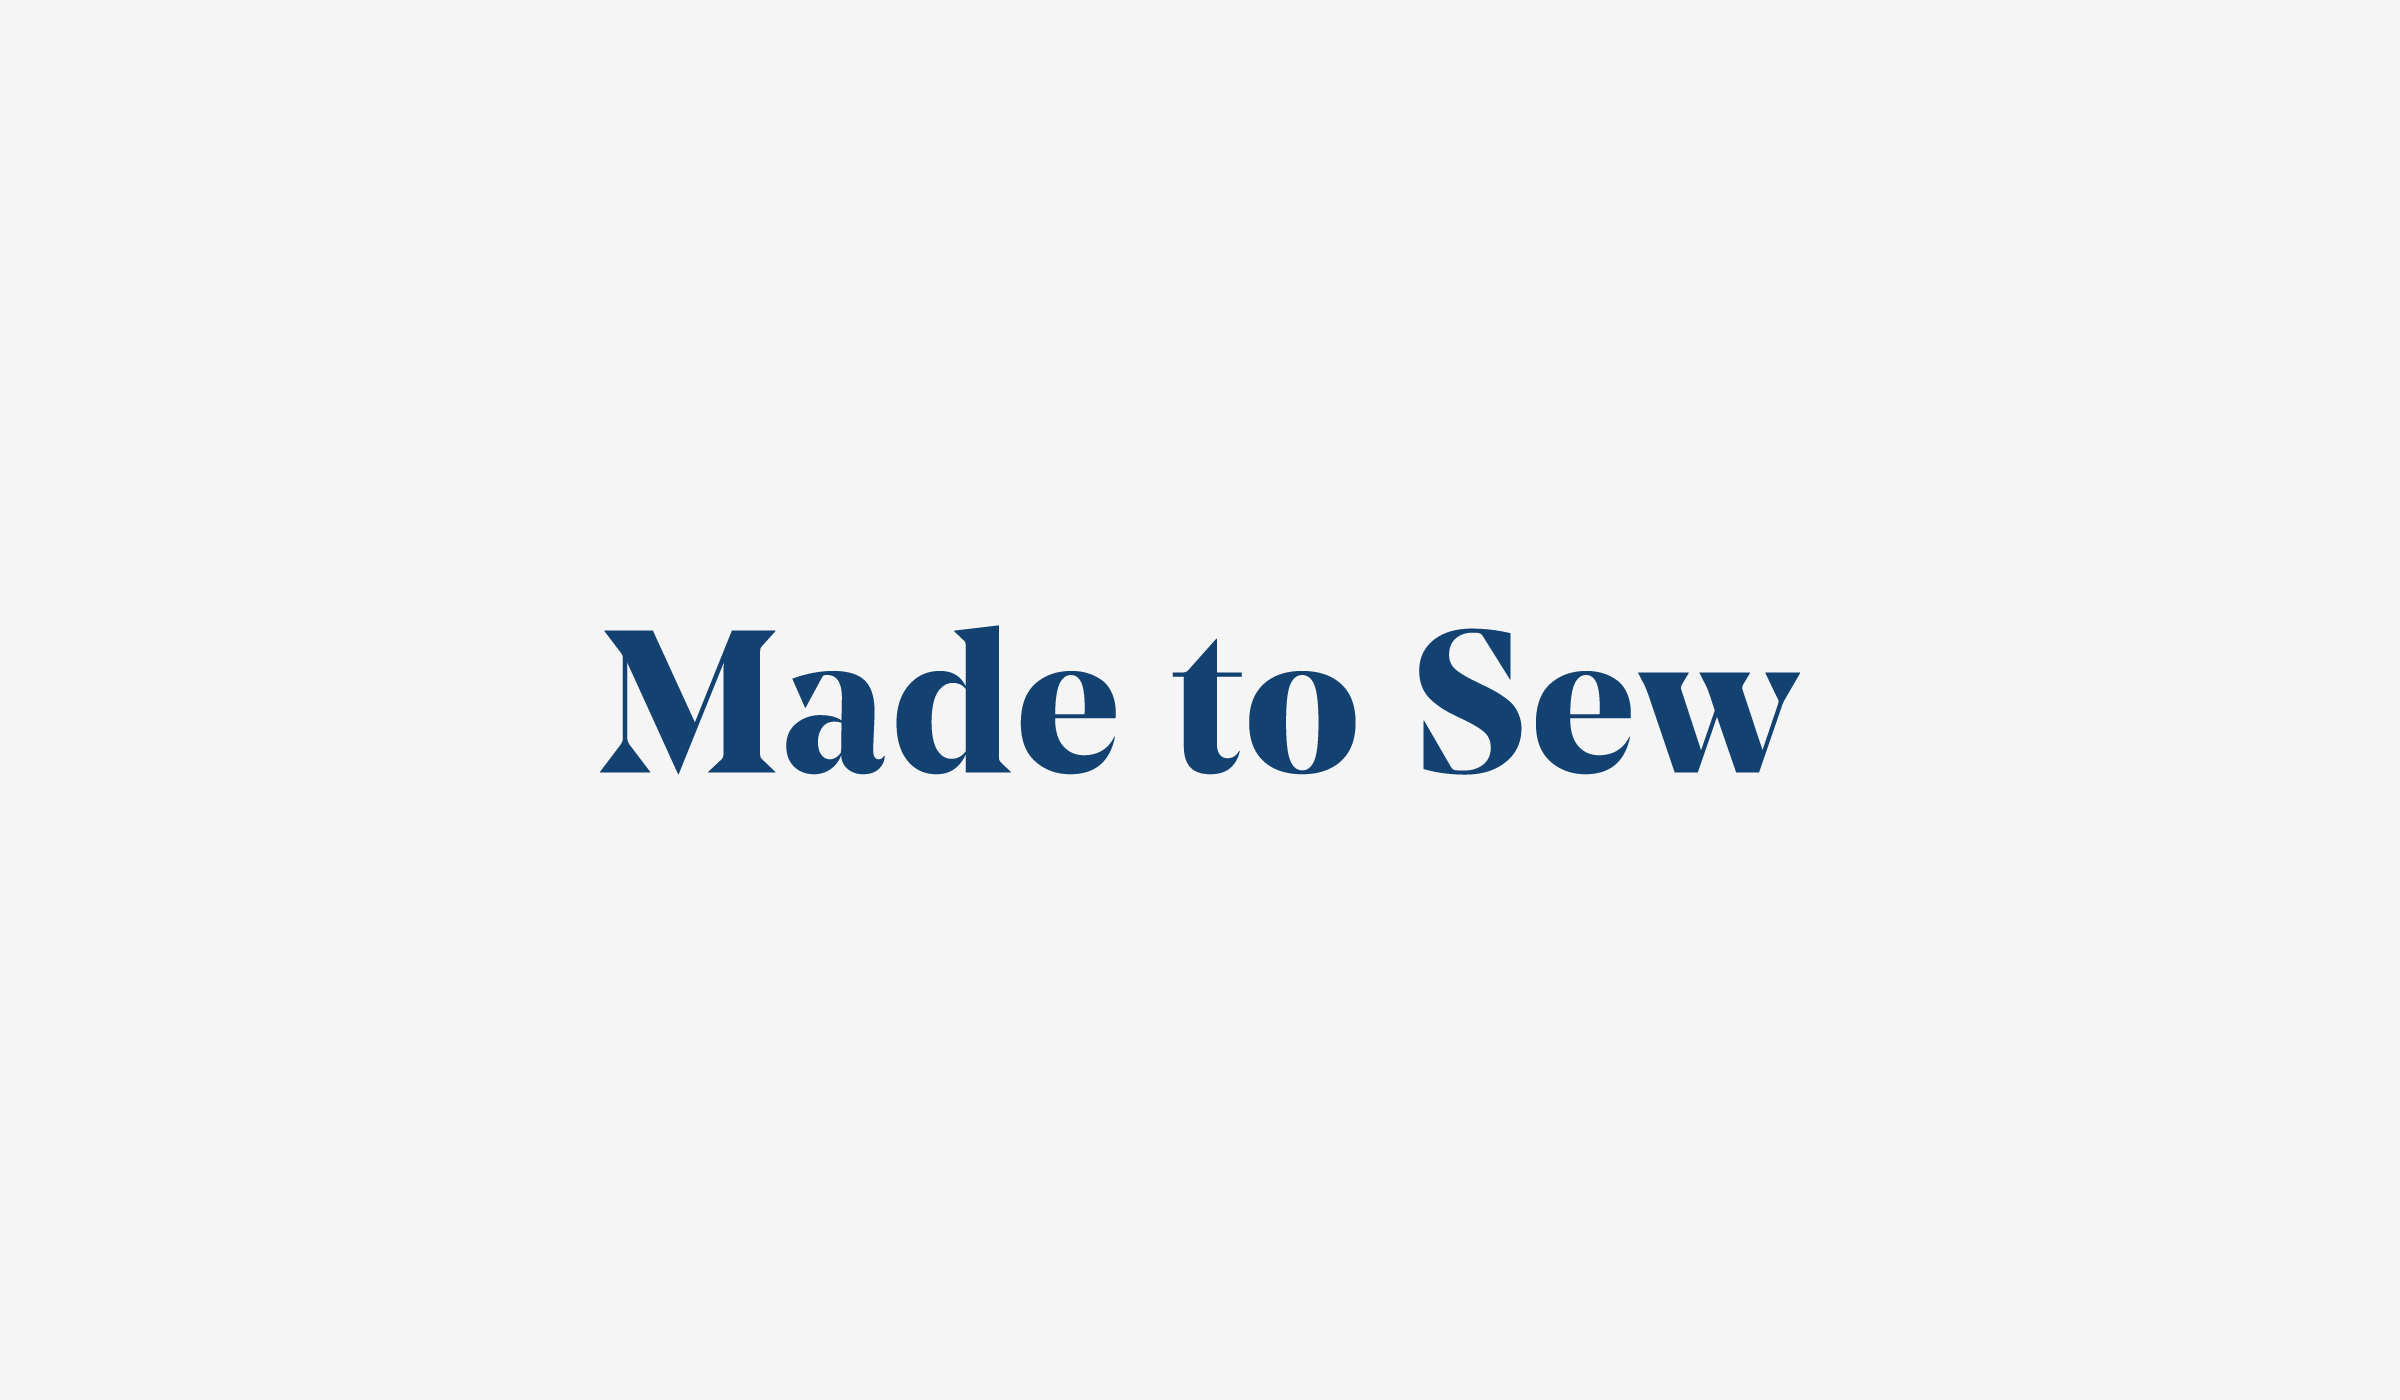 Close up of the Made to Sew logo